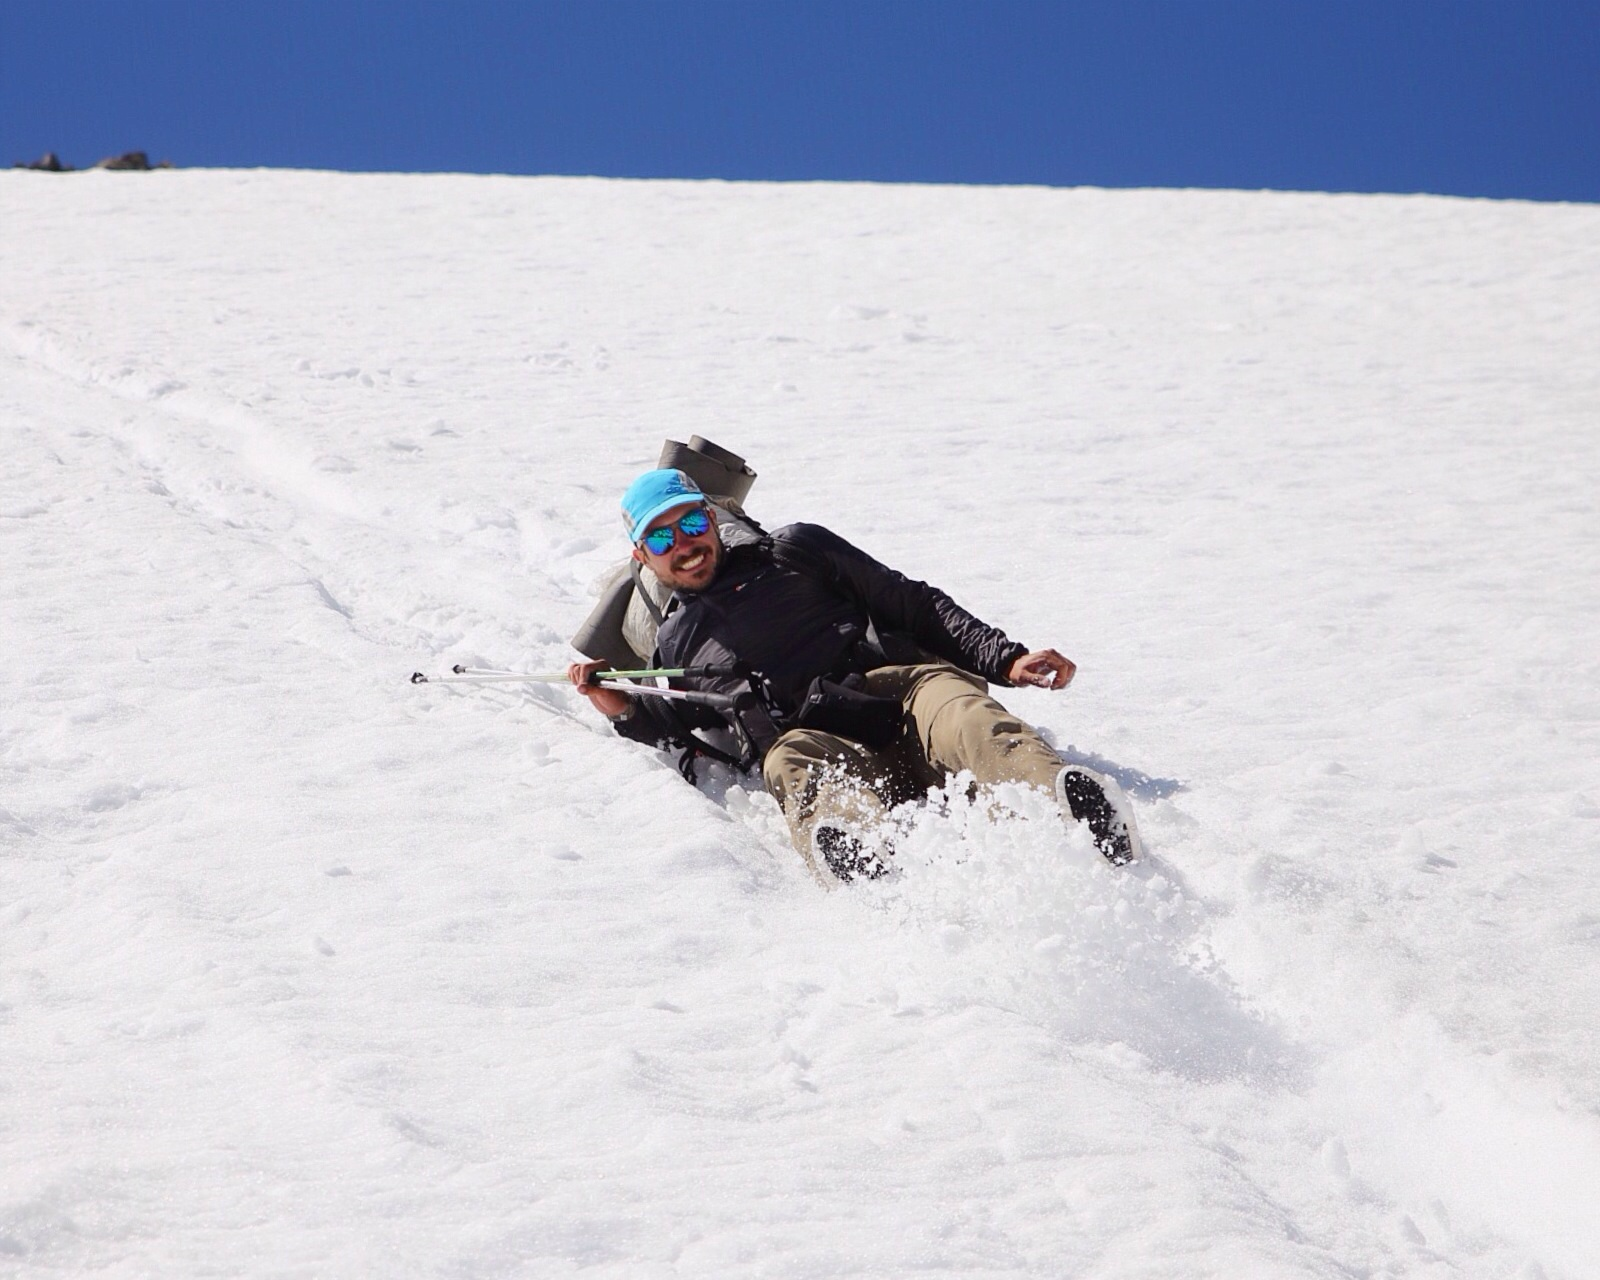 Sometimes you glissade down and skip a bunch of switchbacks. Glissading can be very fun, but it is not without its dangers.